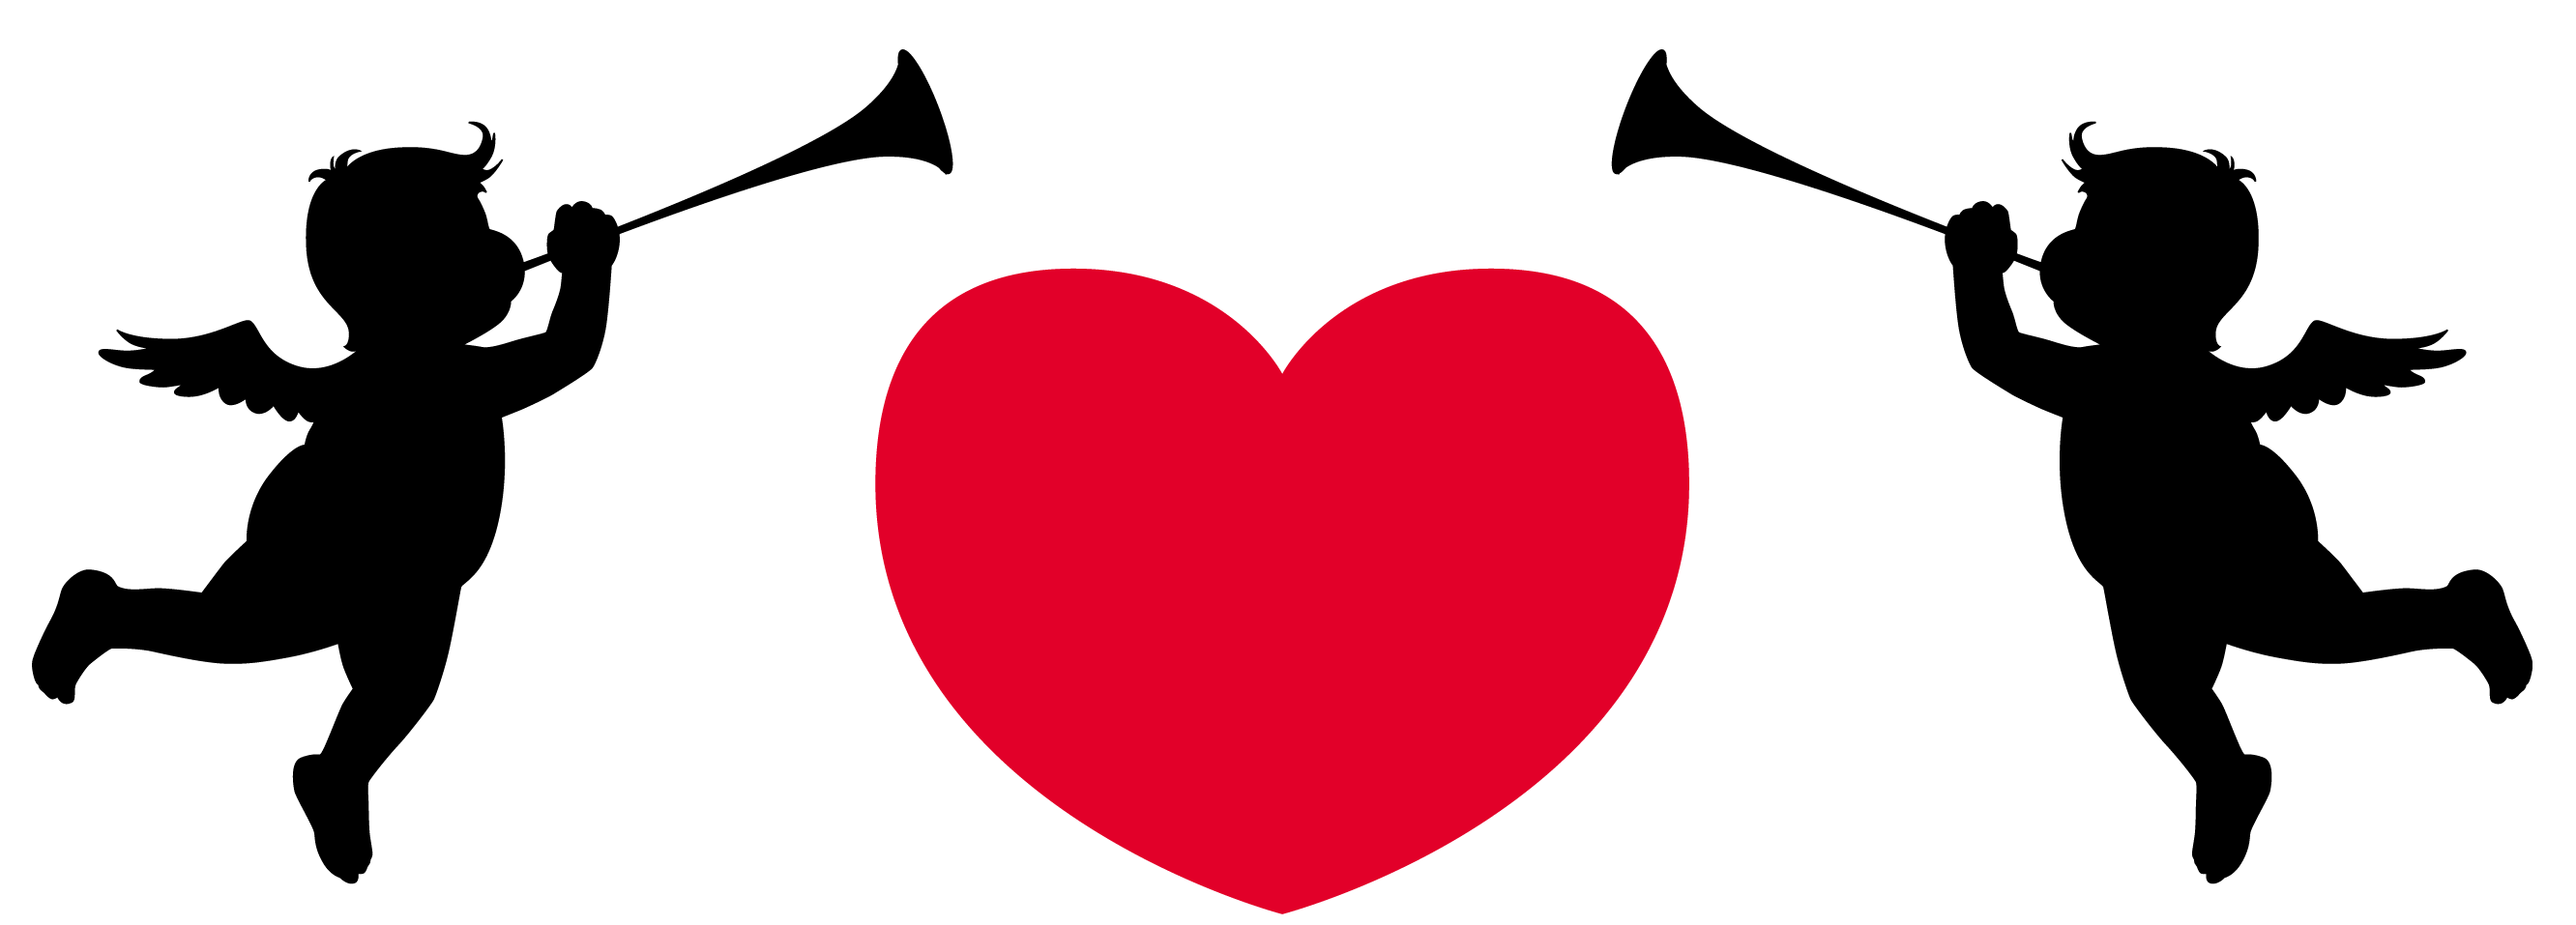 Day clip art valentine. Valentines cupid png clip stock